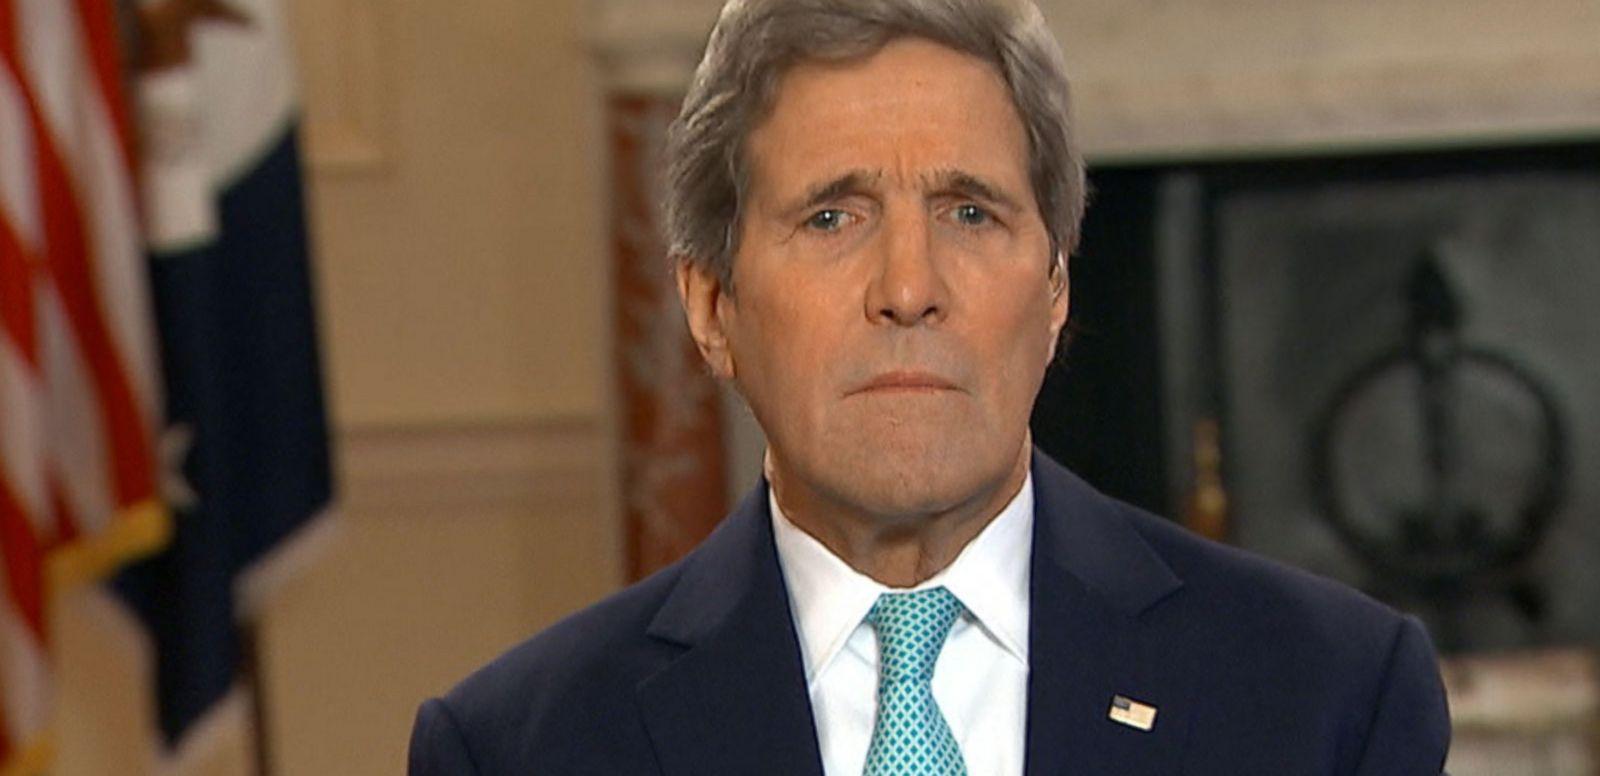 VIDEO: Sec. John Kerry on the Threat From ISIS